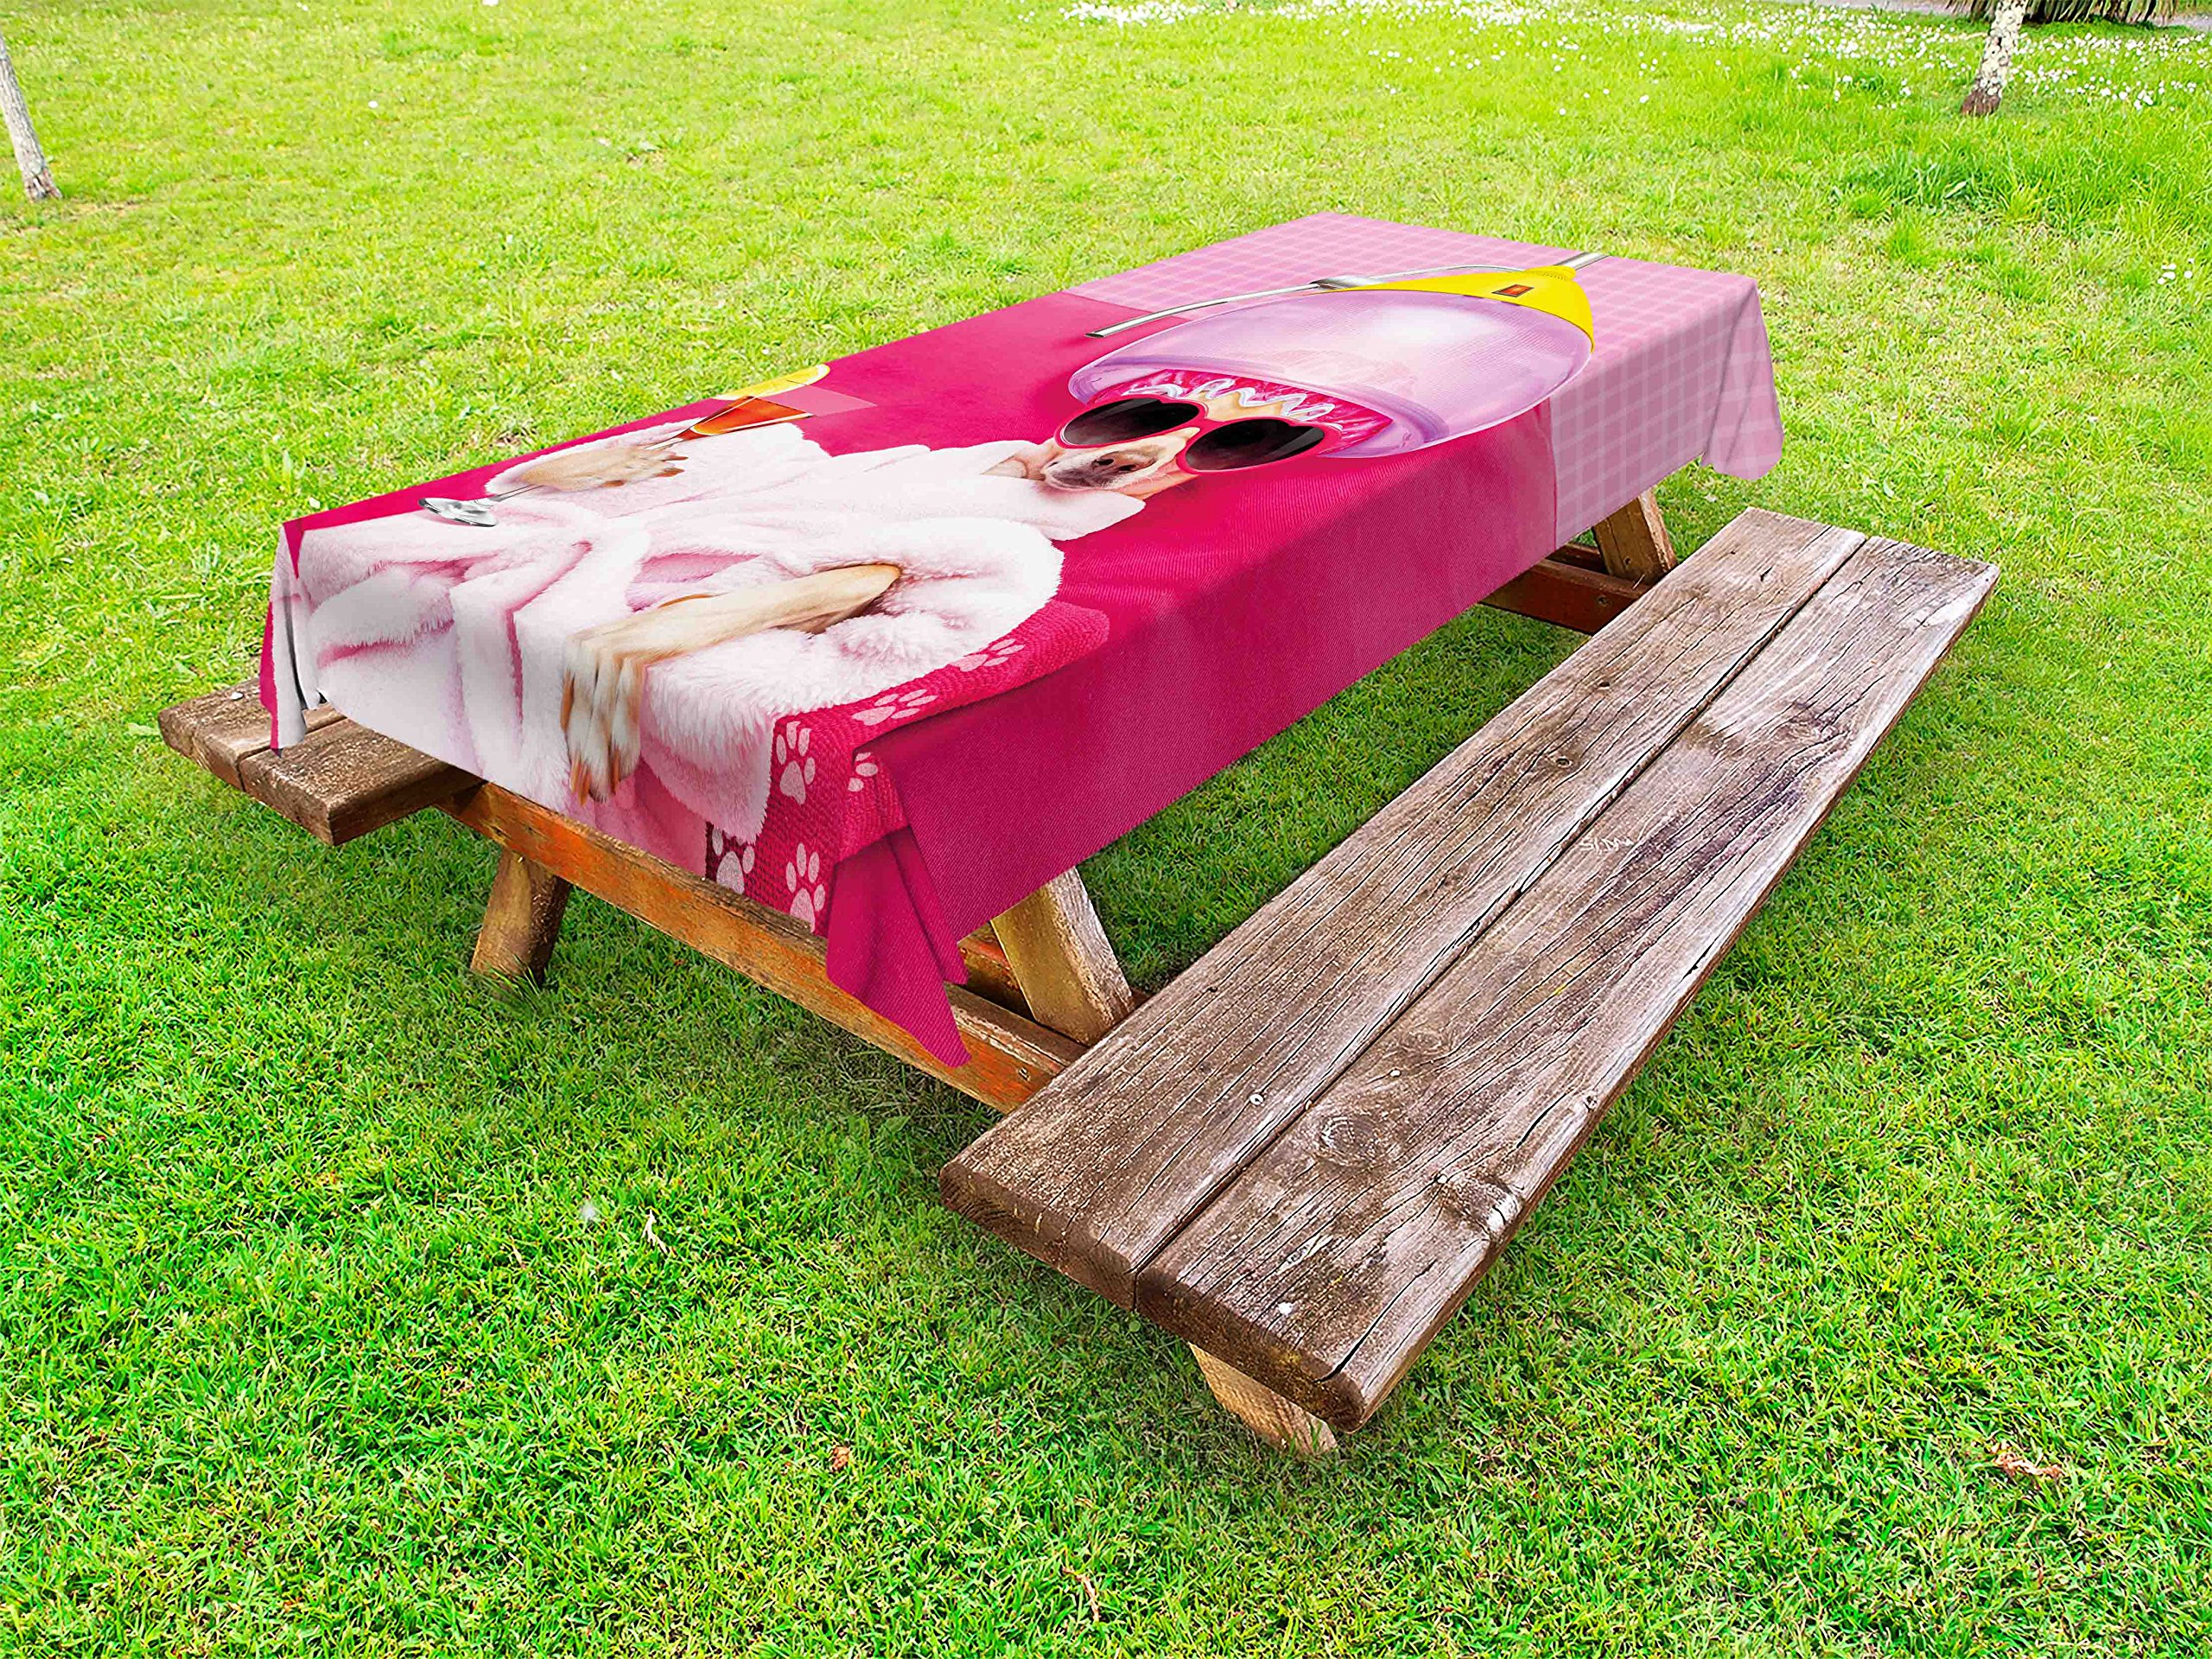 Lunarable Funny Outdoor Tablecloth, Chihuahua Dog Relaxing and Lying in Wellness Spa Fashion Puppy Comic Print, Decorative Washable Picnic Table Cloth, 58 X 84 inches, Magenta Baby Pink